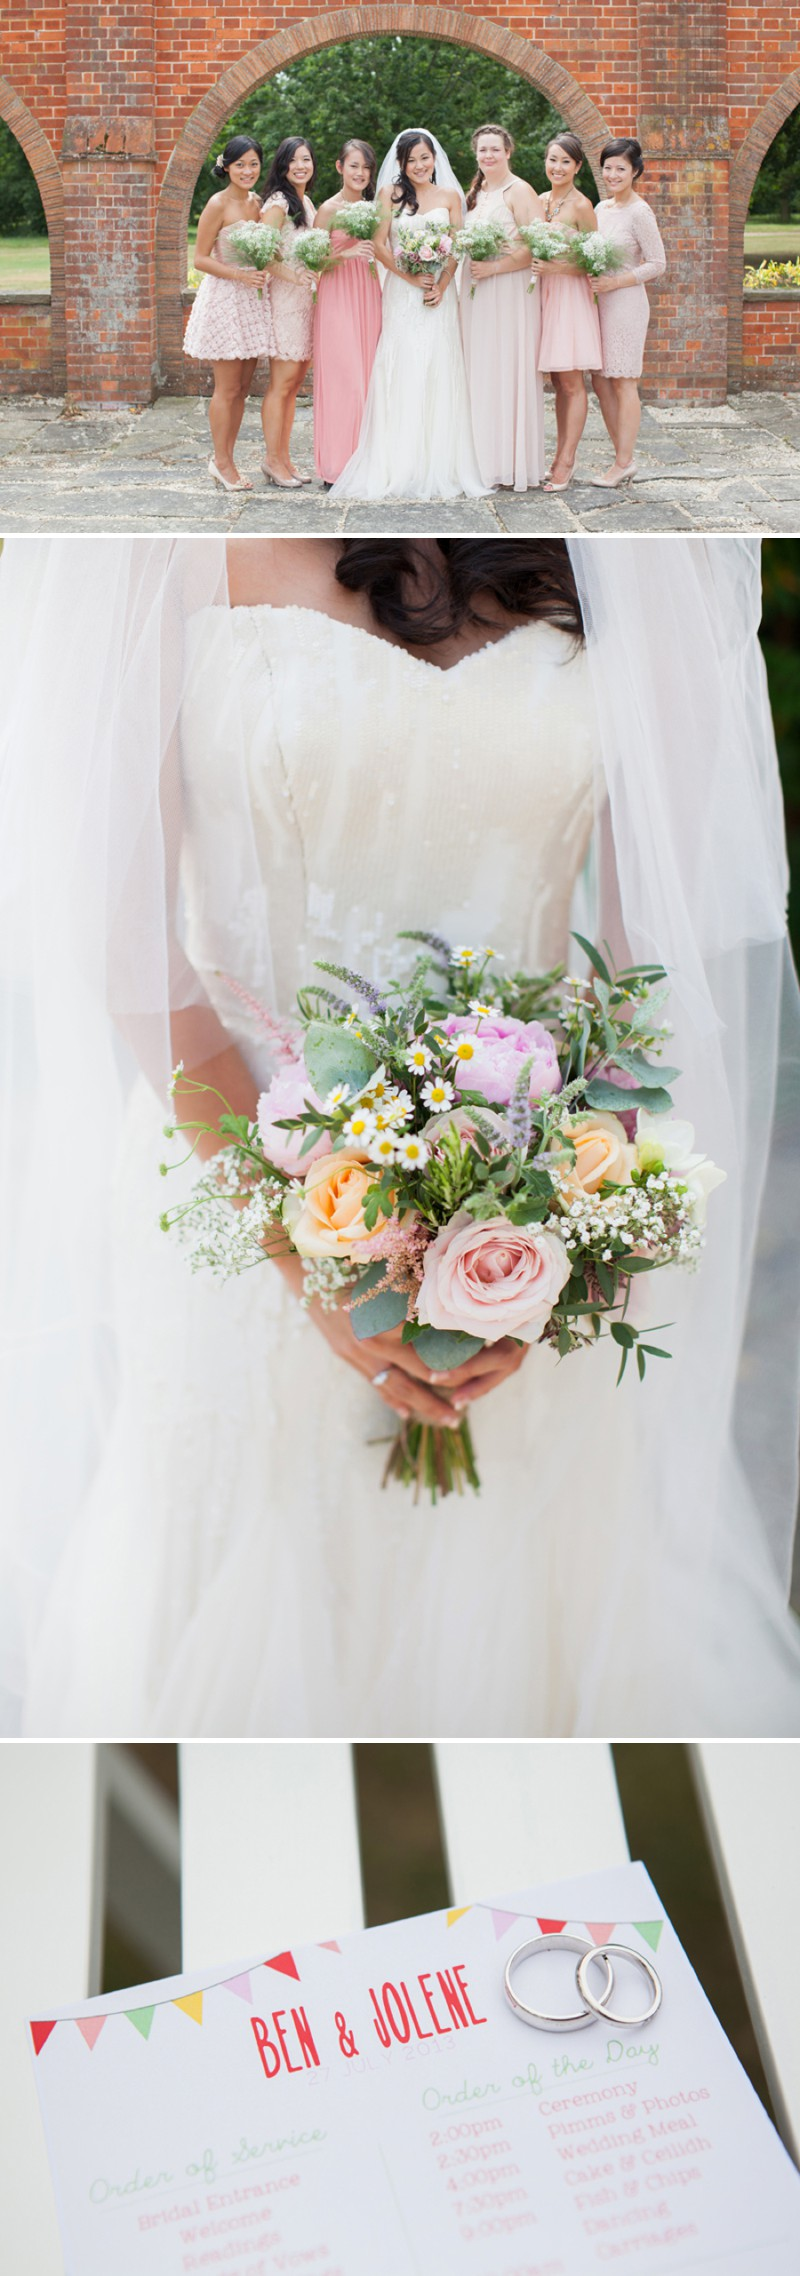 A Fun And Pretty English Garden Wedding At Lains Barn In Oxford With A Stephanie Allin Hayworth Dress And A Peony Bouquet By Hayley Savage Photography._0003